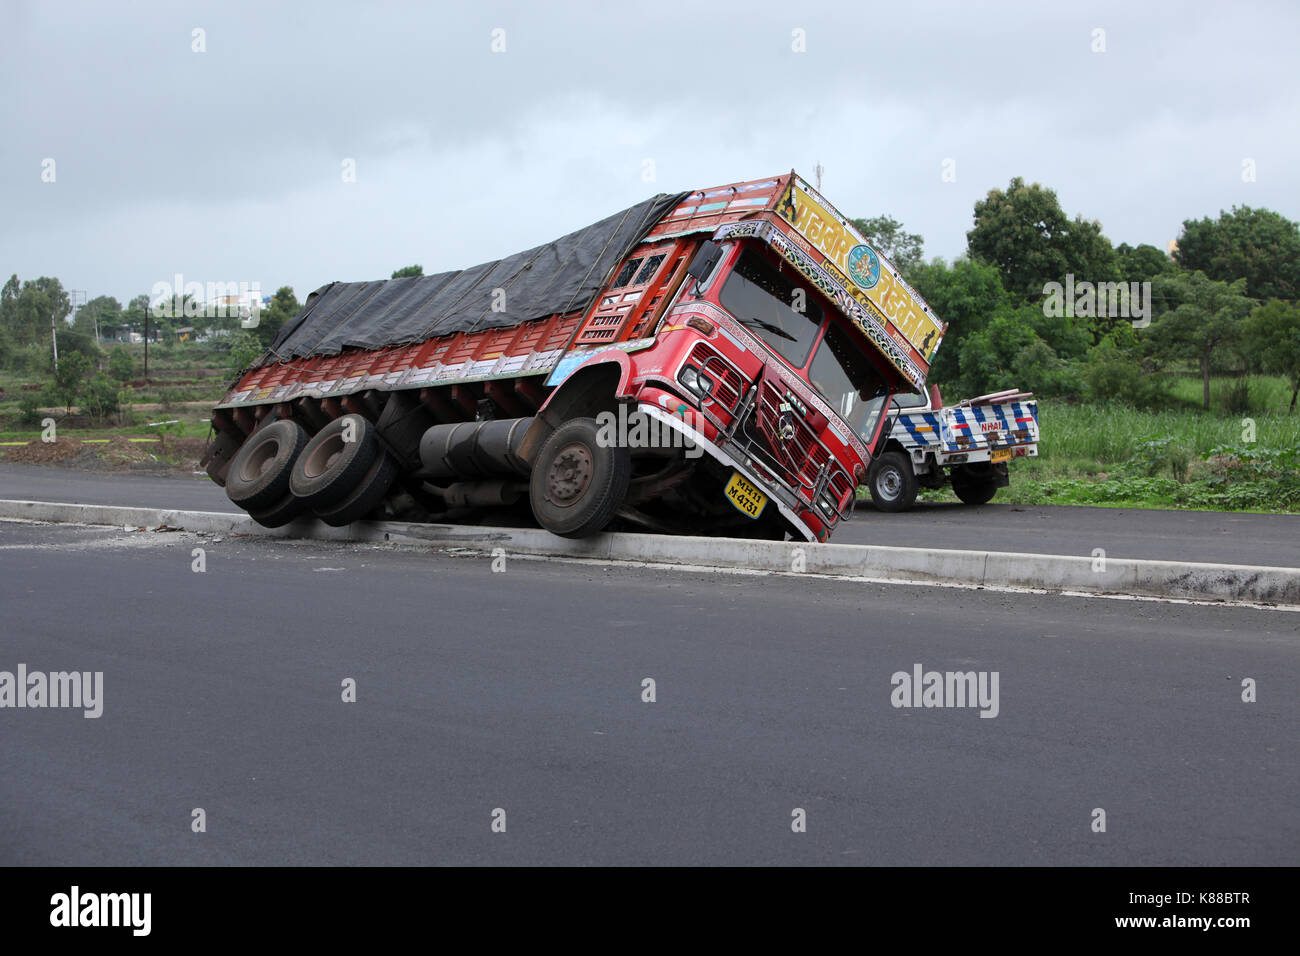 A truck toppled over on a highway in India due to speeding. - Stock Image